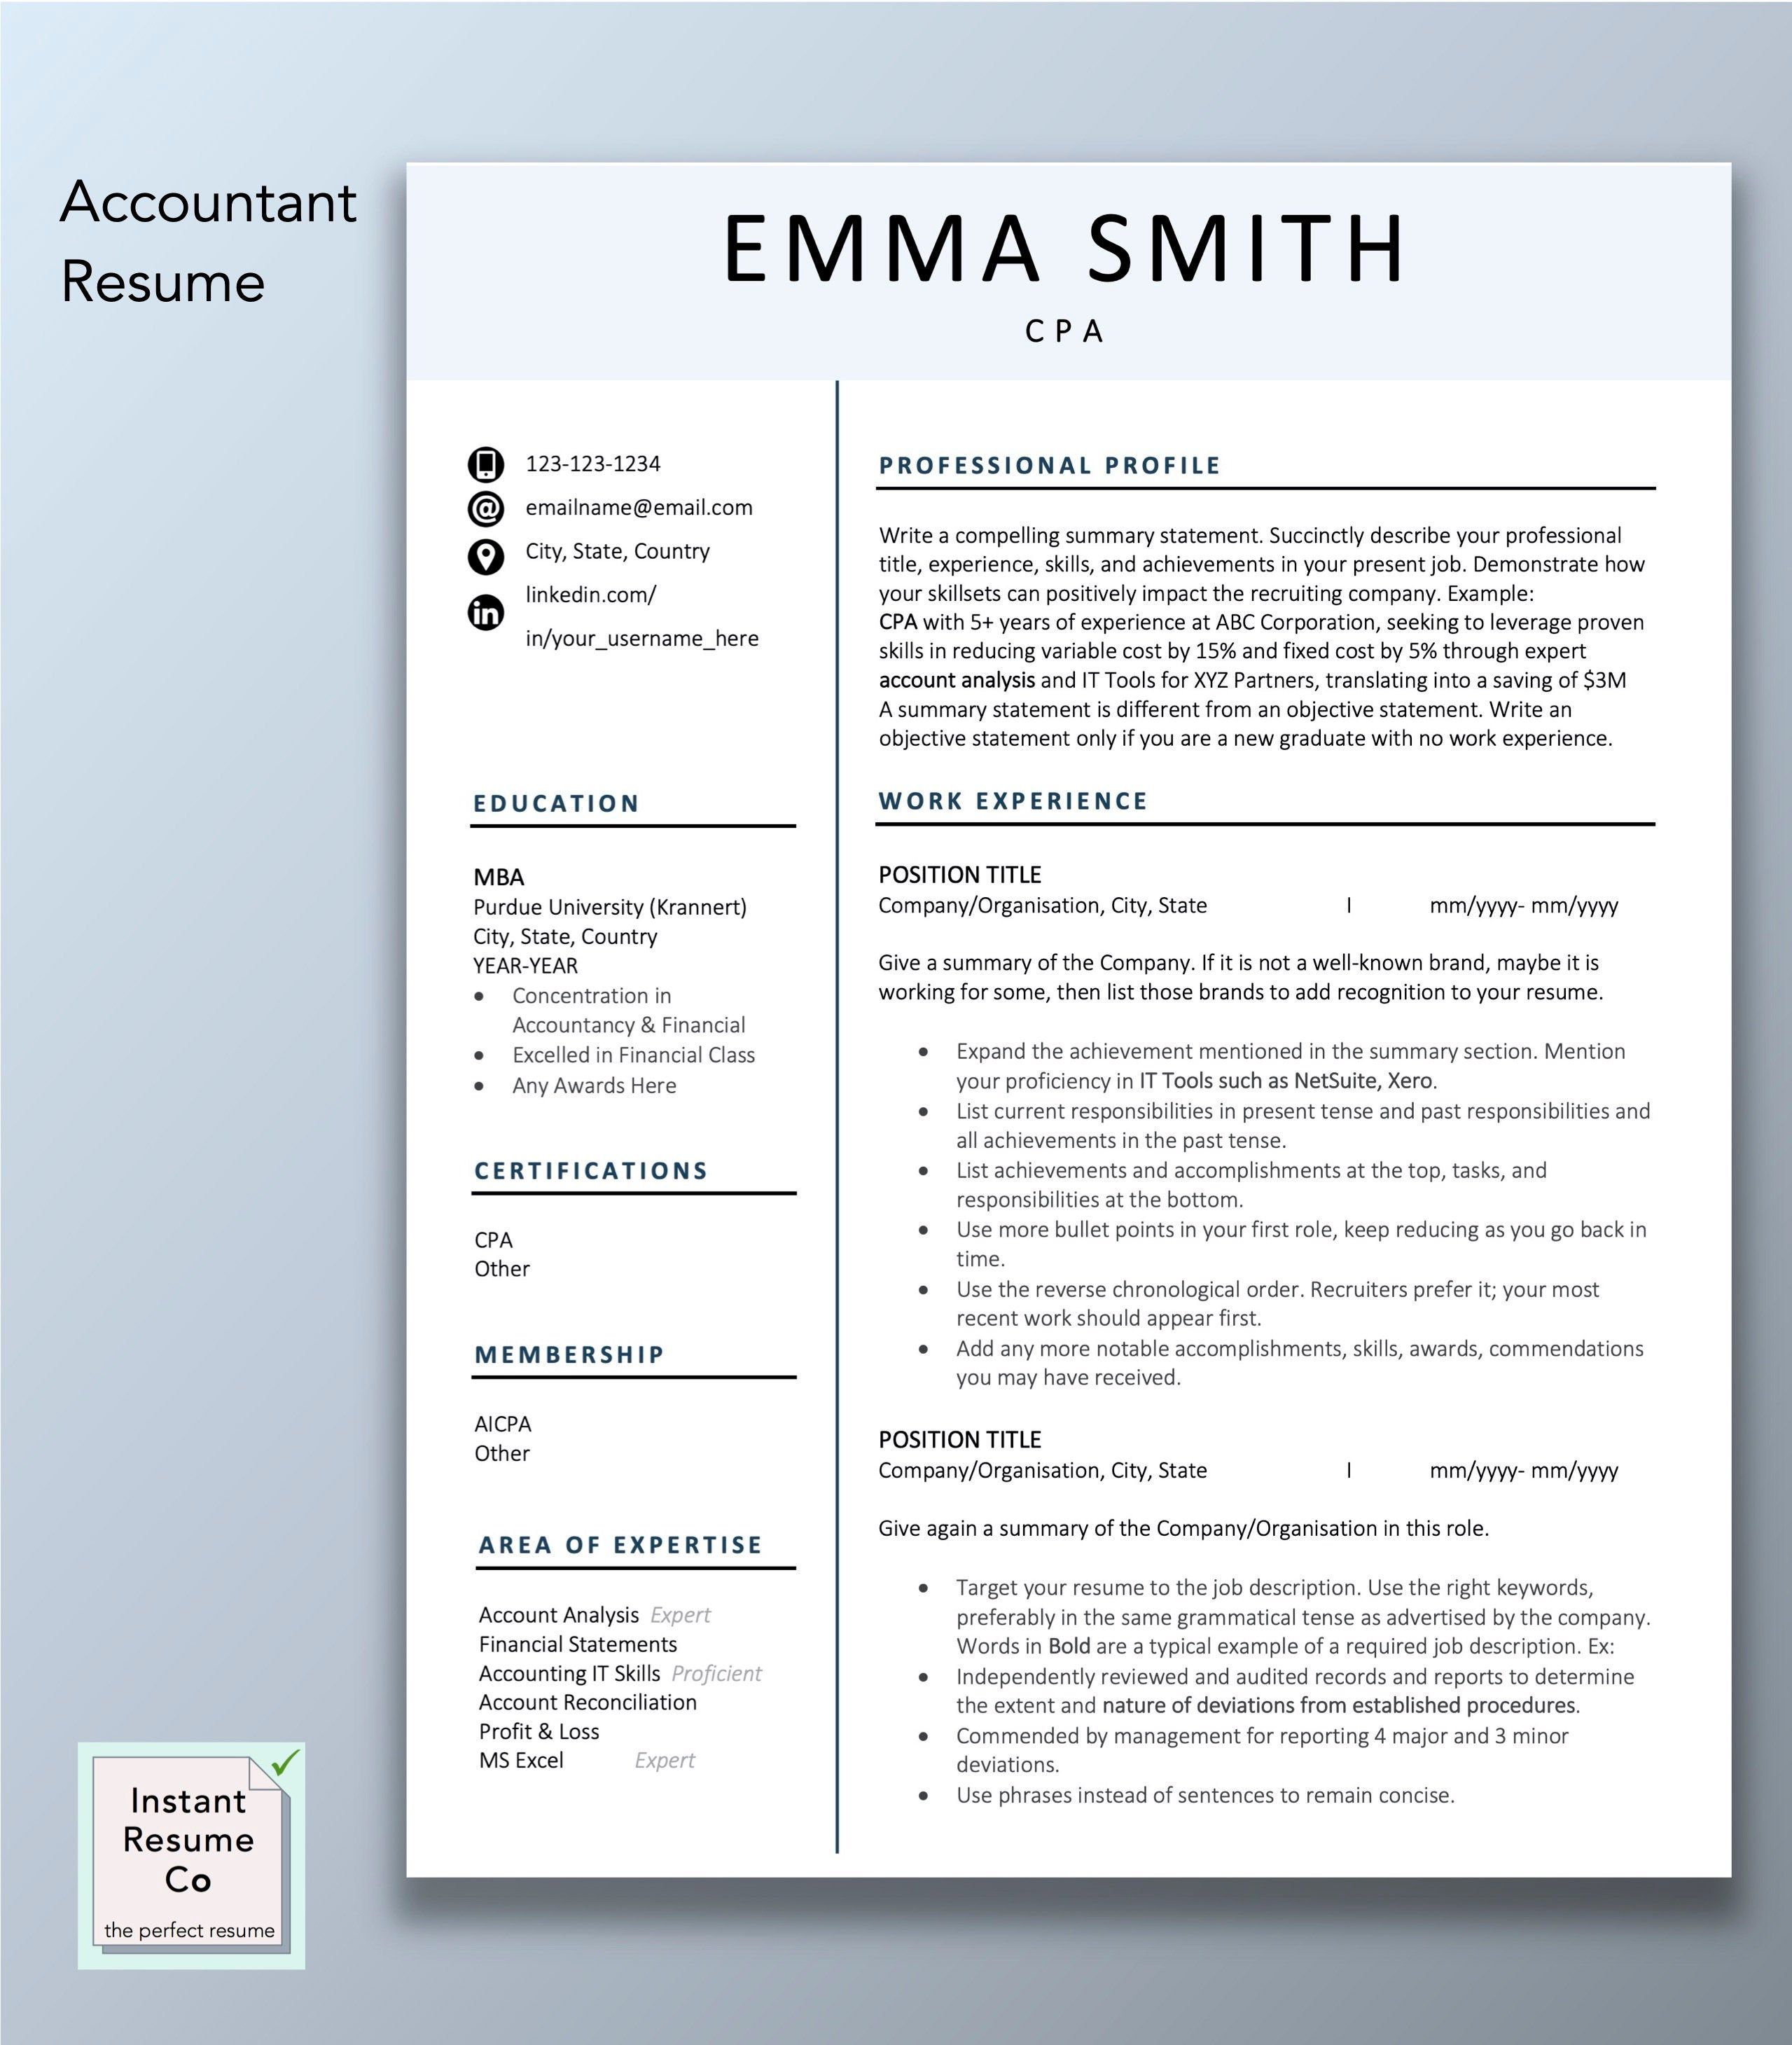 Accountant Resume Cpa Professional Resume Template Creative Etsy Accountant Resume Cv Template Word Resume Resume for accountant in word format